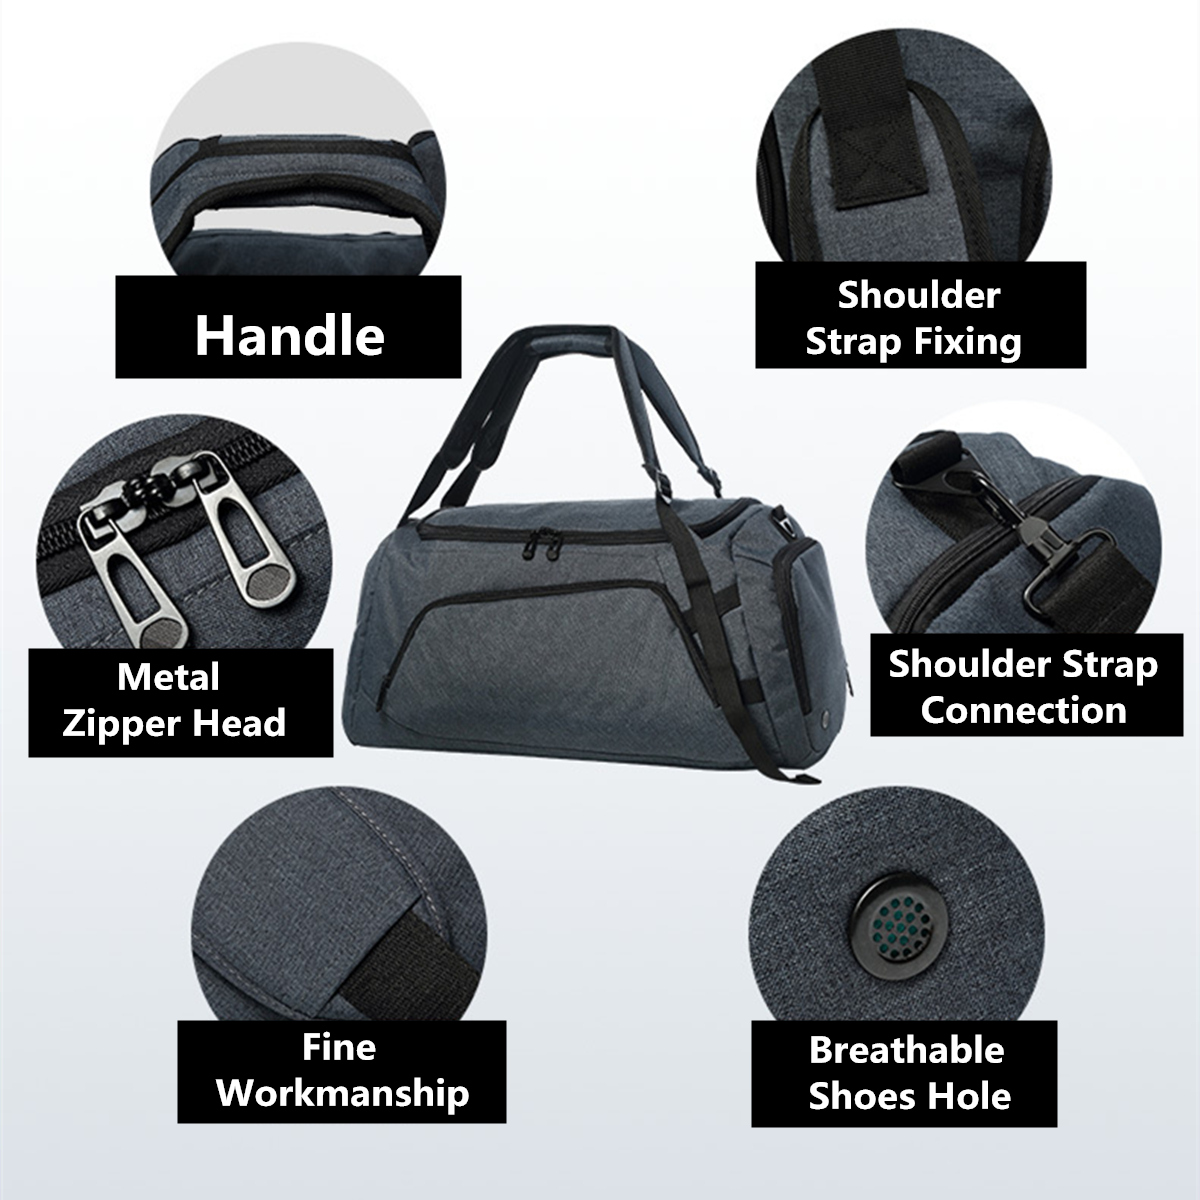 Travel Bag With Shoes Pockets Large Capacity Men Hand Luggage Travel Duffle Bags Weekend Bags Women Multifunctional Travel Bags tuguan new travel bag large capacity men hand luggage travel duffle bags oxford fabric weekend bags backpack travel bags